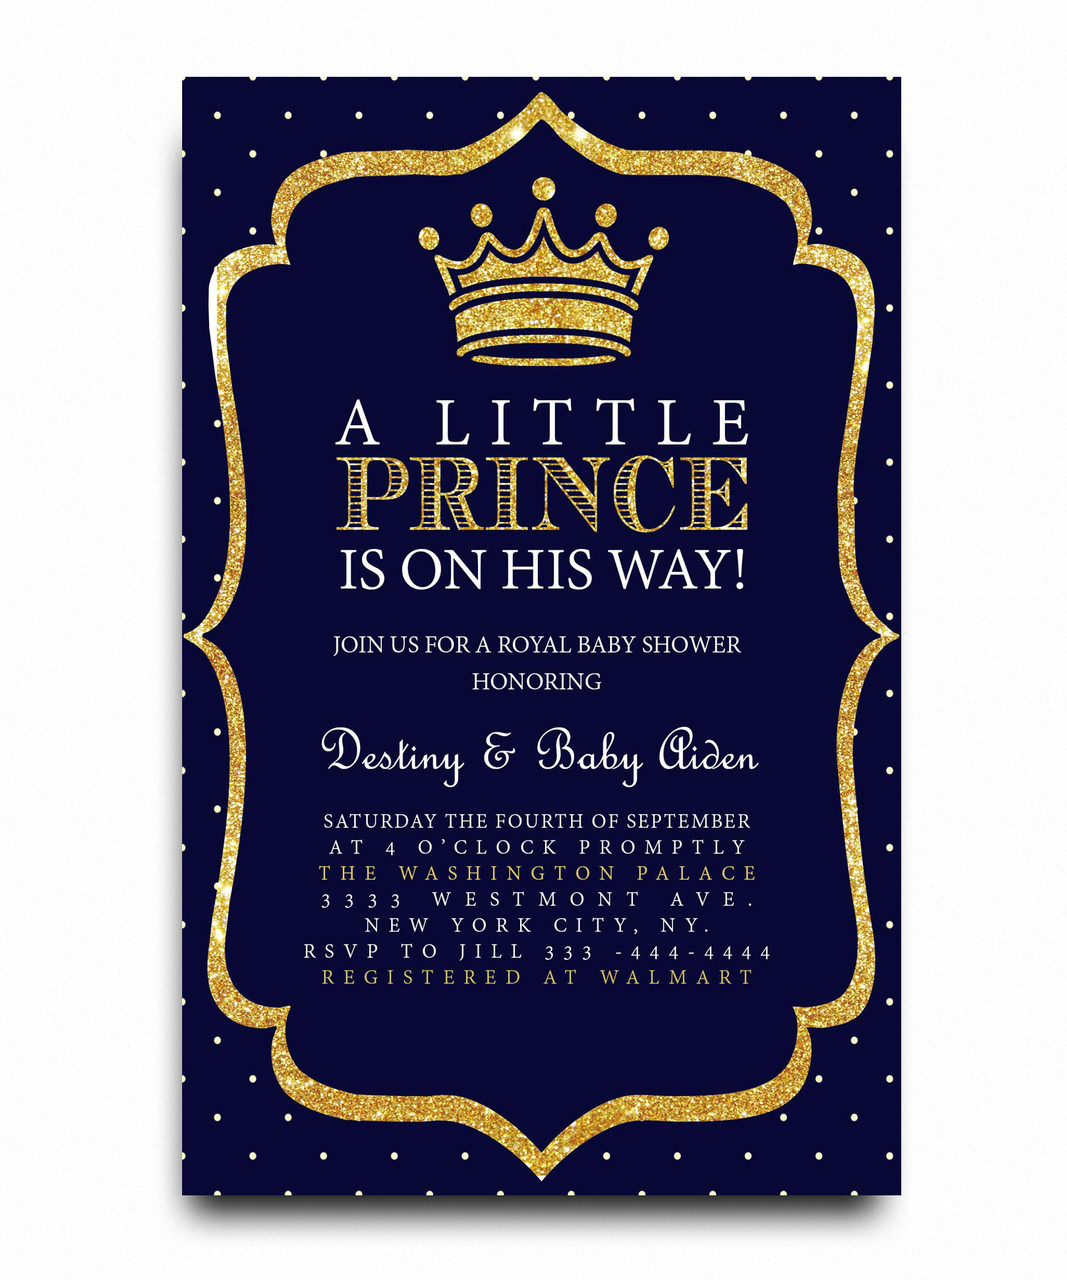 Little Prince Baby Shower Invitation Royal Baby